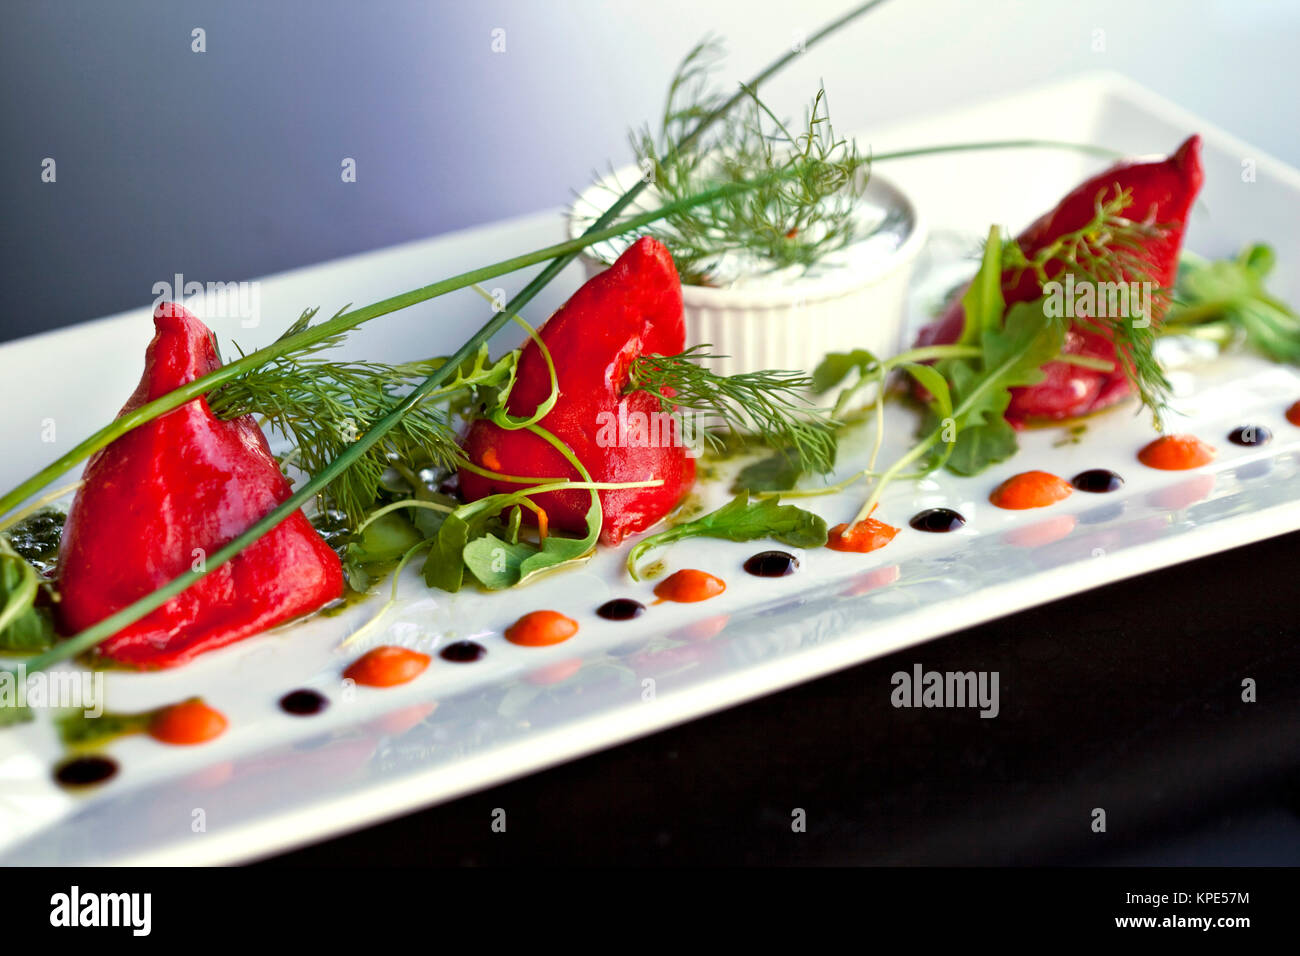 Cod and peppers on a plate - Stock Image